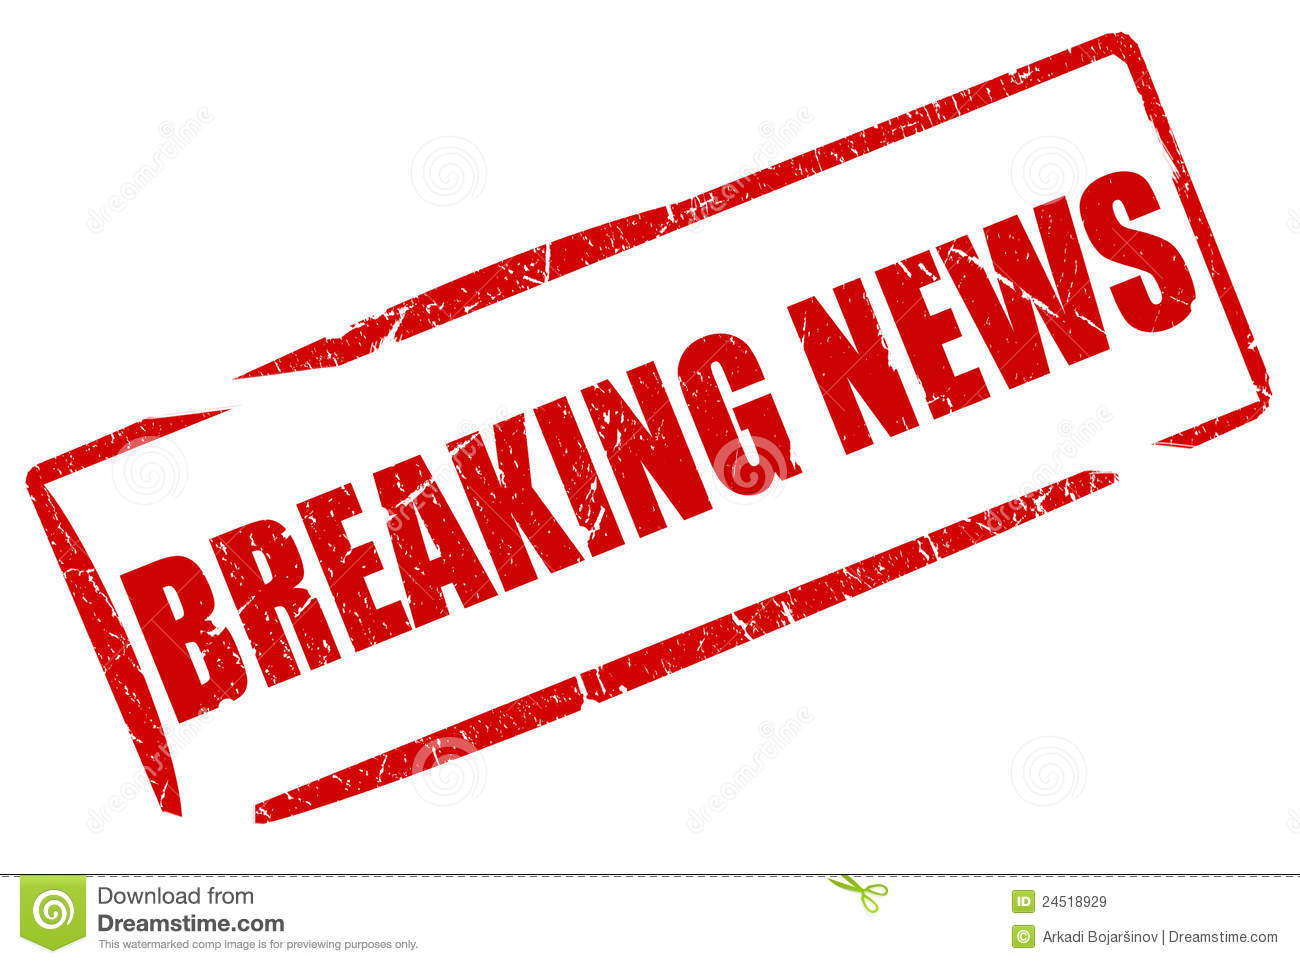 breaking news clipart - photo #4